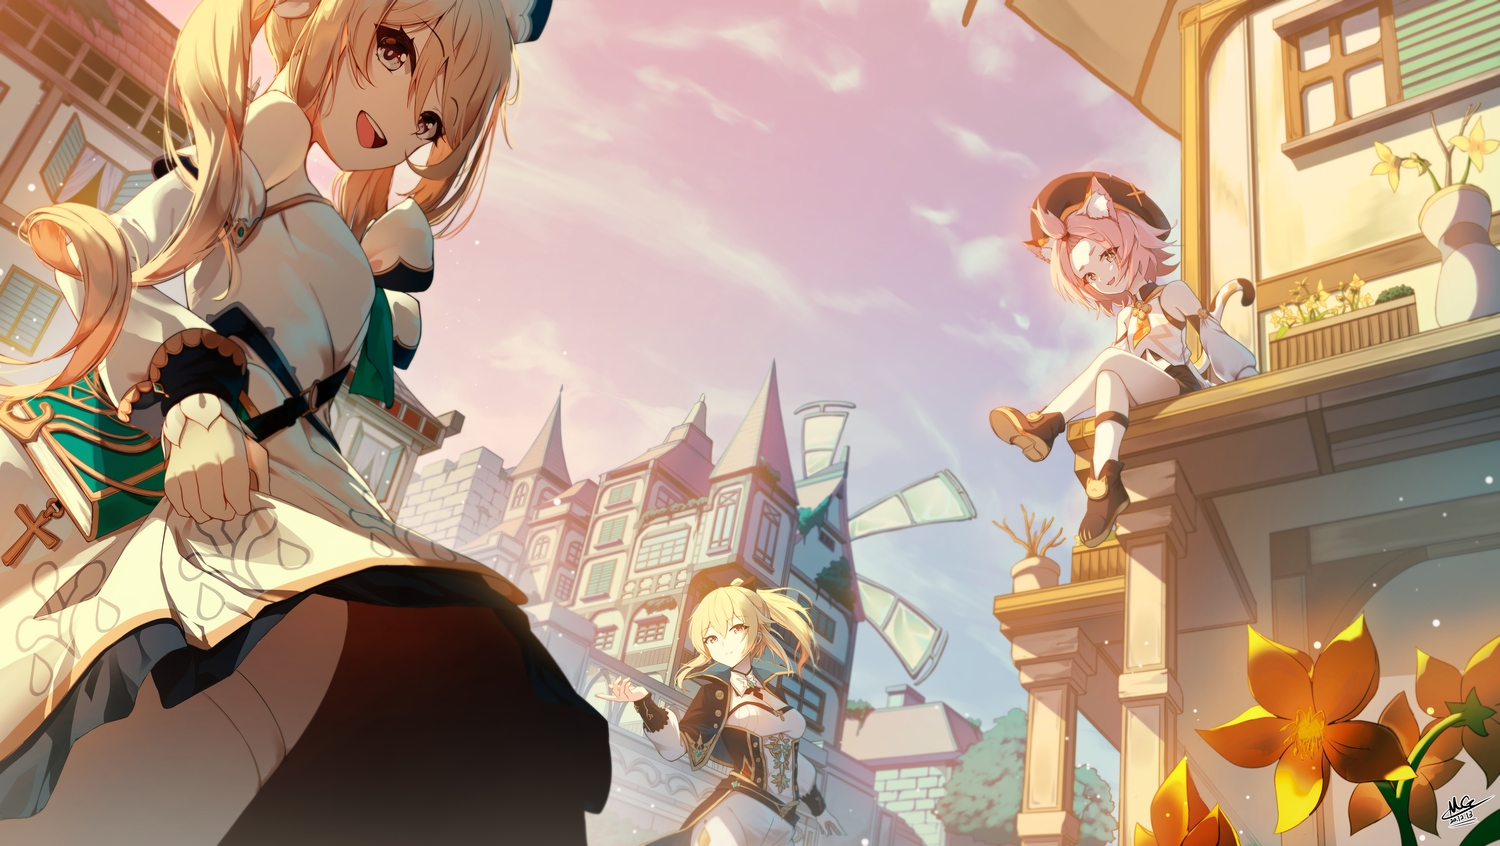 animal_ears barbara_(genshin_impact) blonde_hair building catgirl cat_smile city clouds diona_(genshin_impact) flowers genshin_impact jean_gunnhildr long_hair magica ponytail signed sky tail twintails windmill